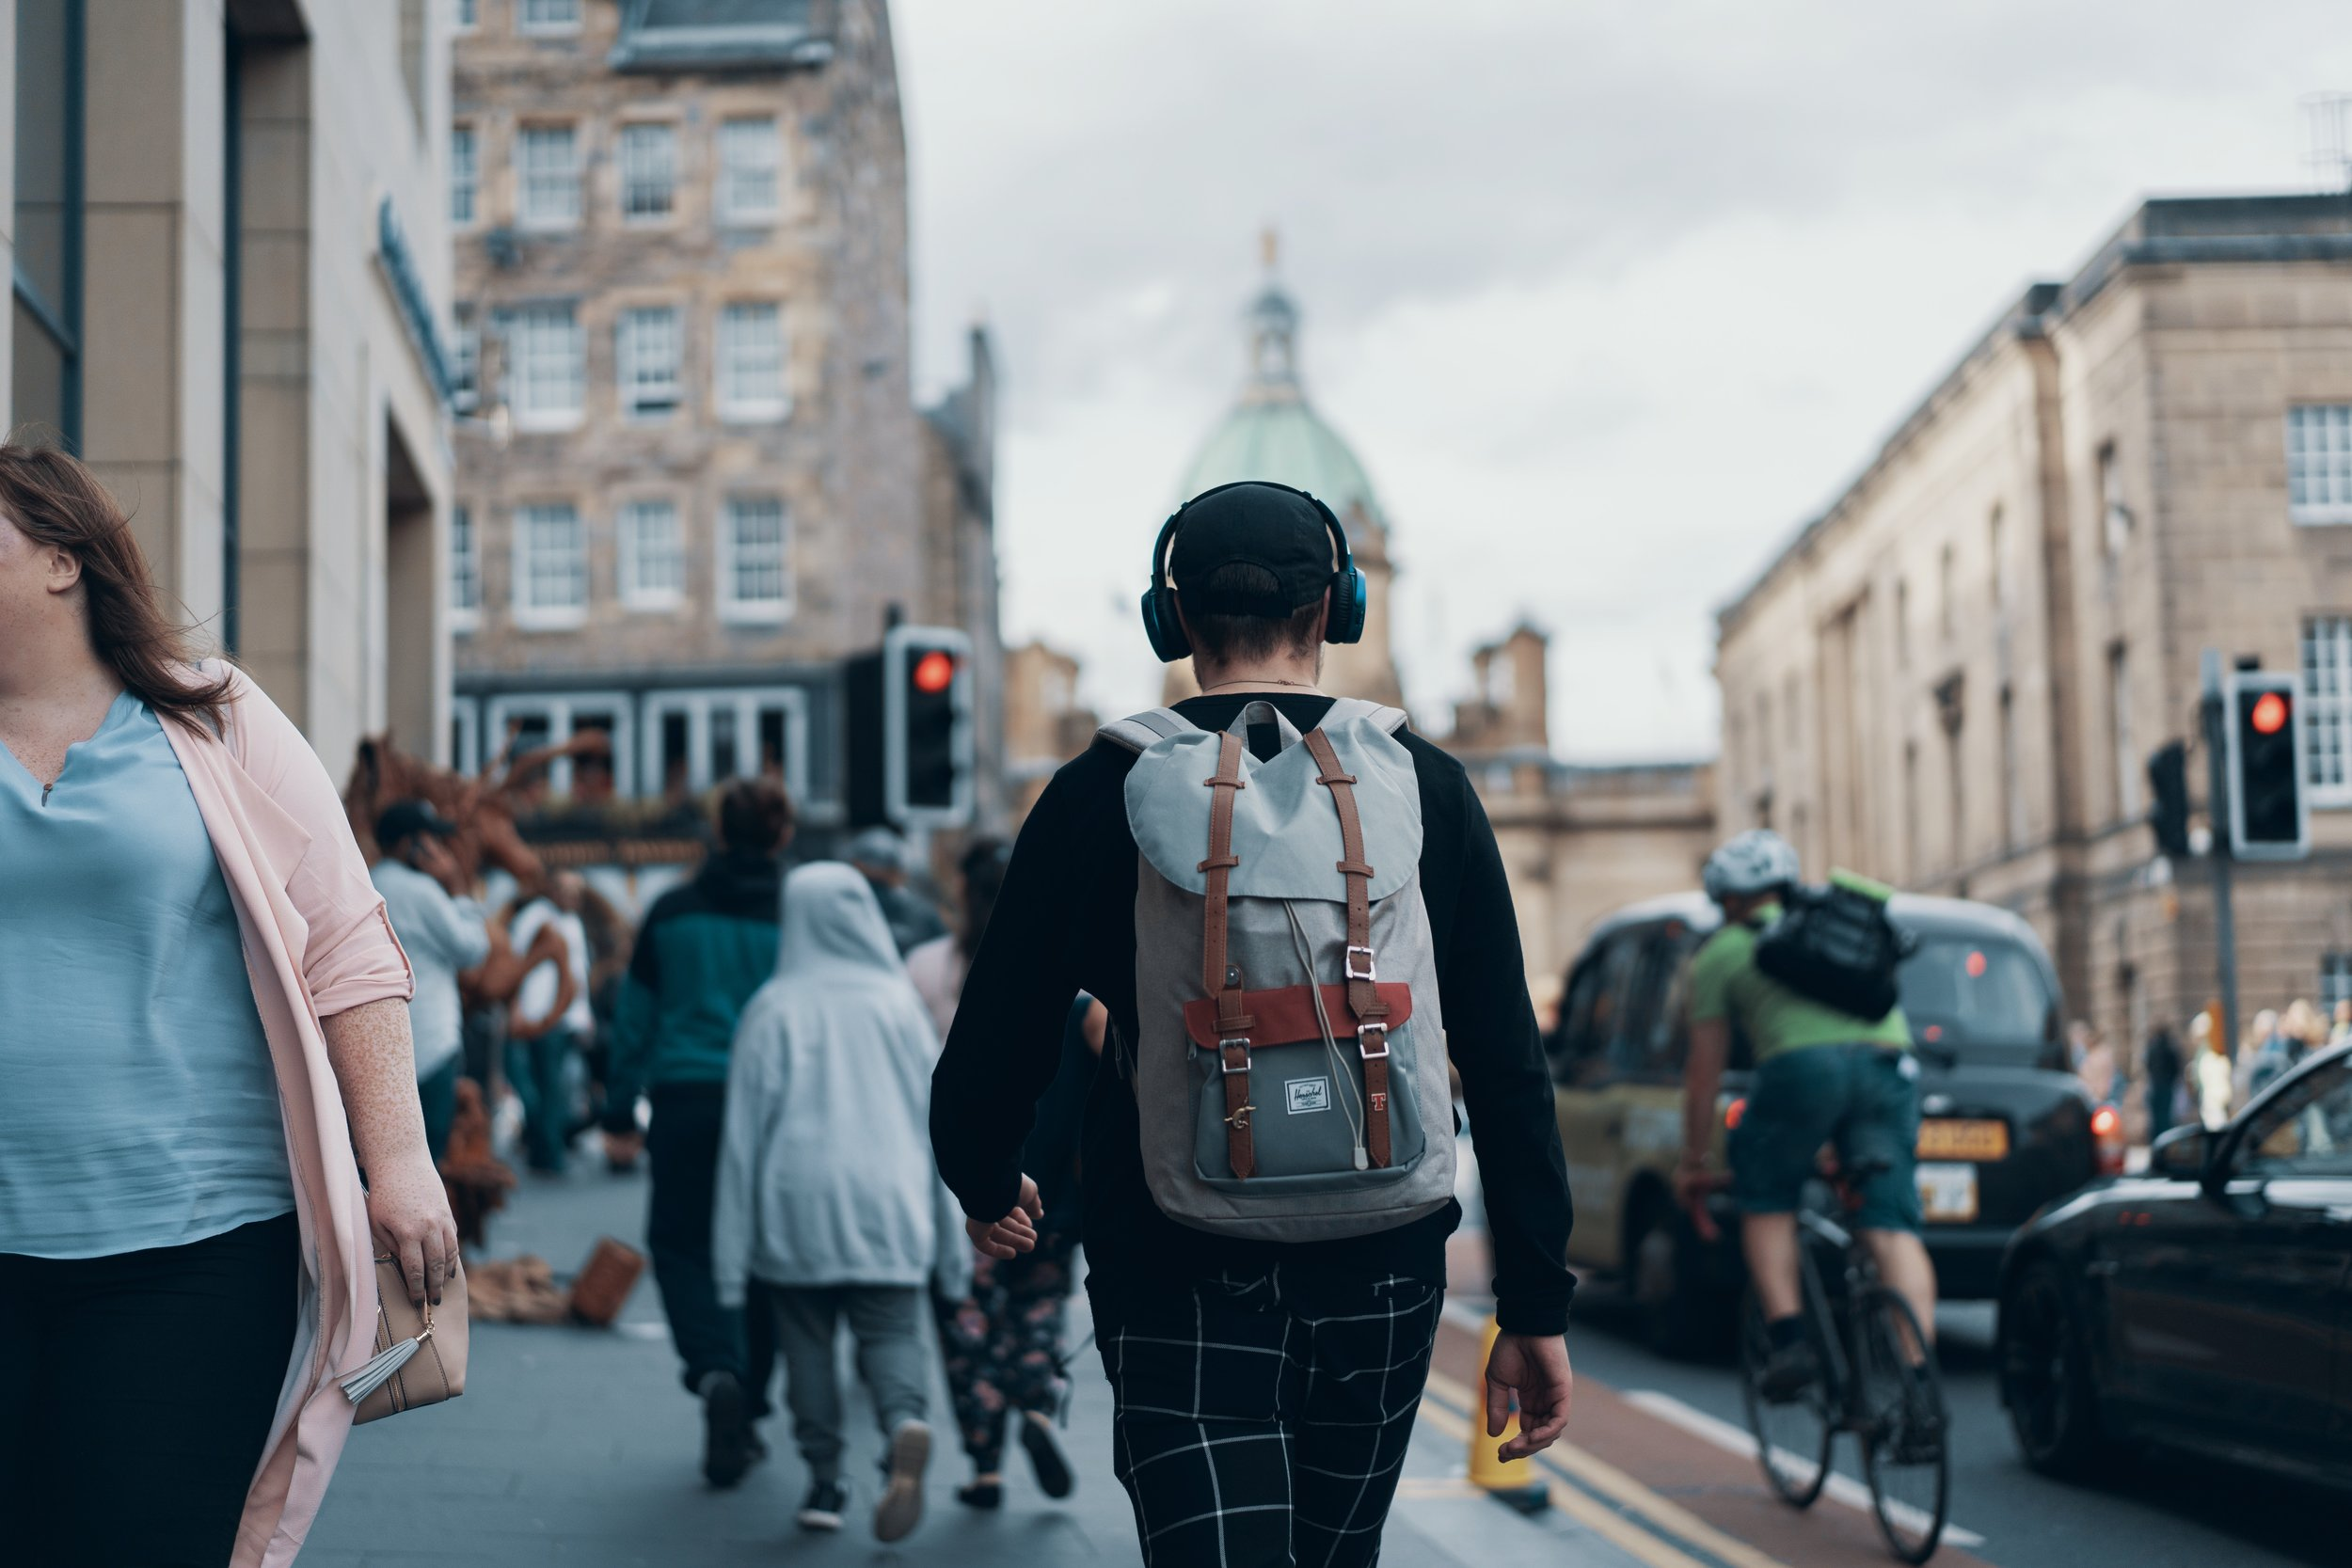 Young male with headphones walking through city streets